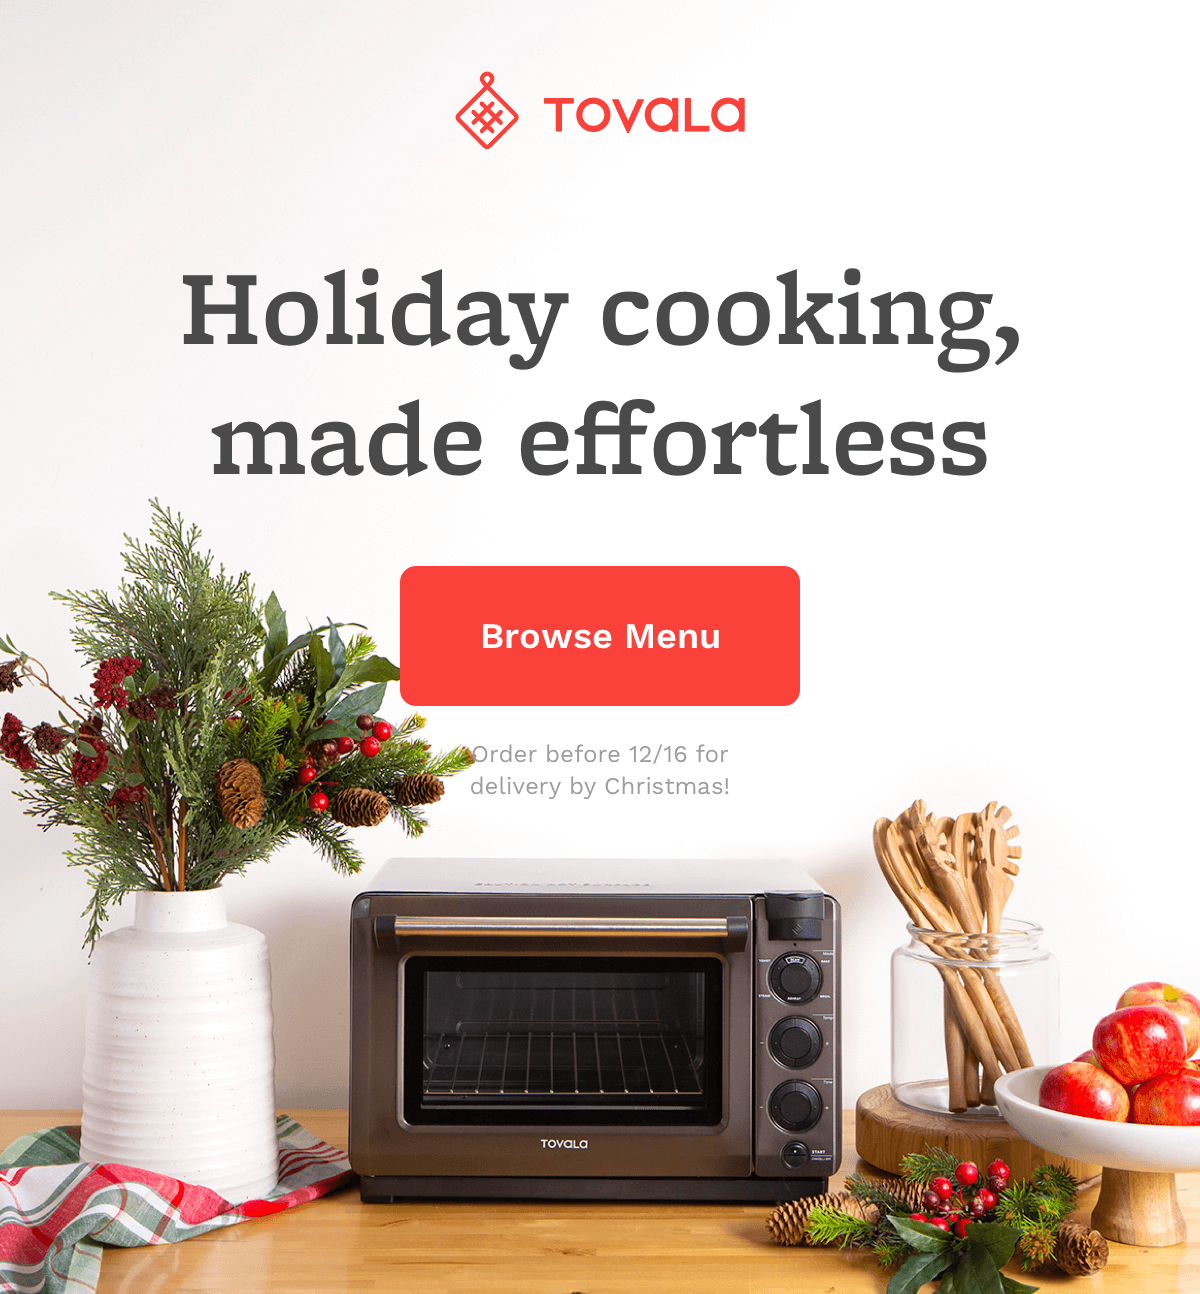 Holiday cooking, made effortless